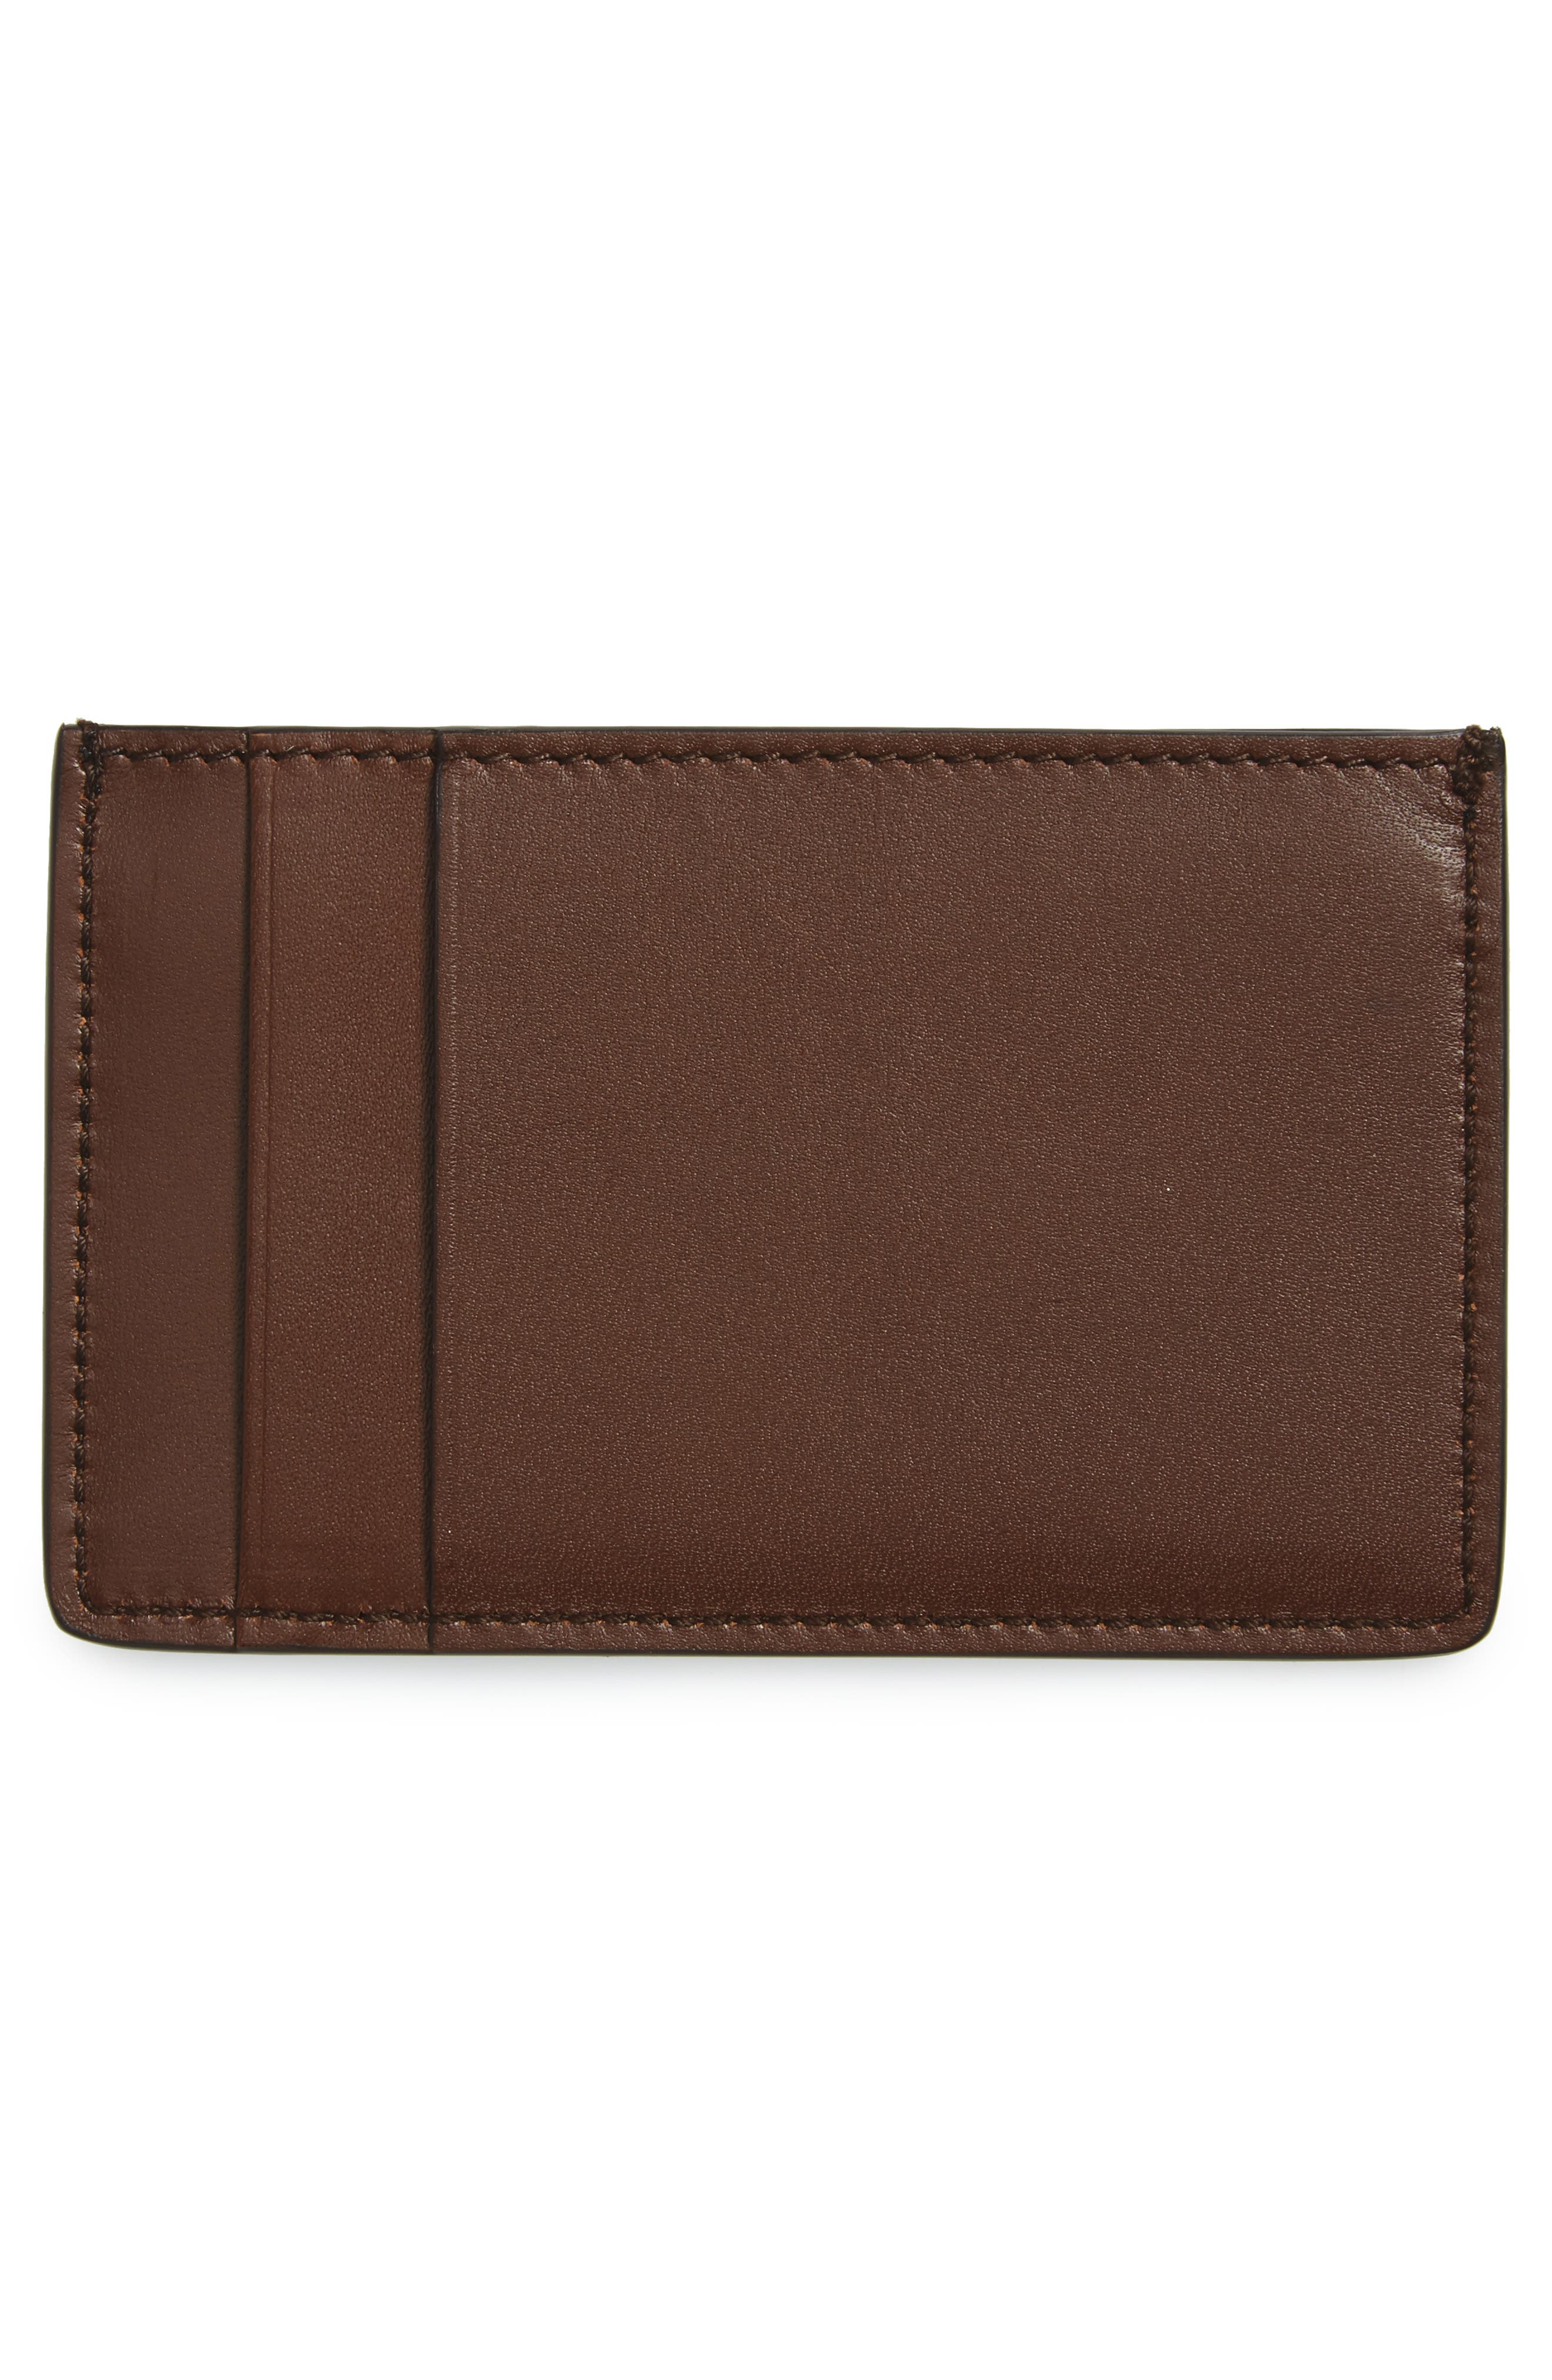 Leather Card Case,                             Alternate thumbnail 2, color,                             Tan